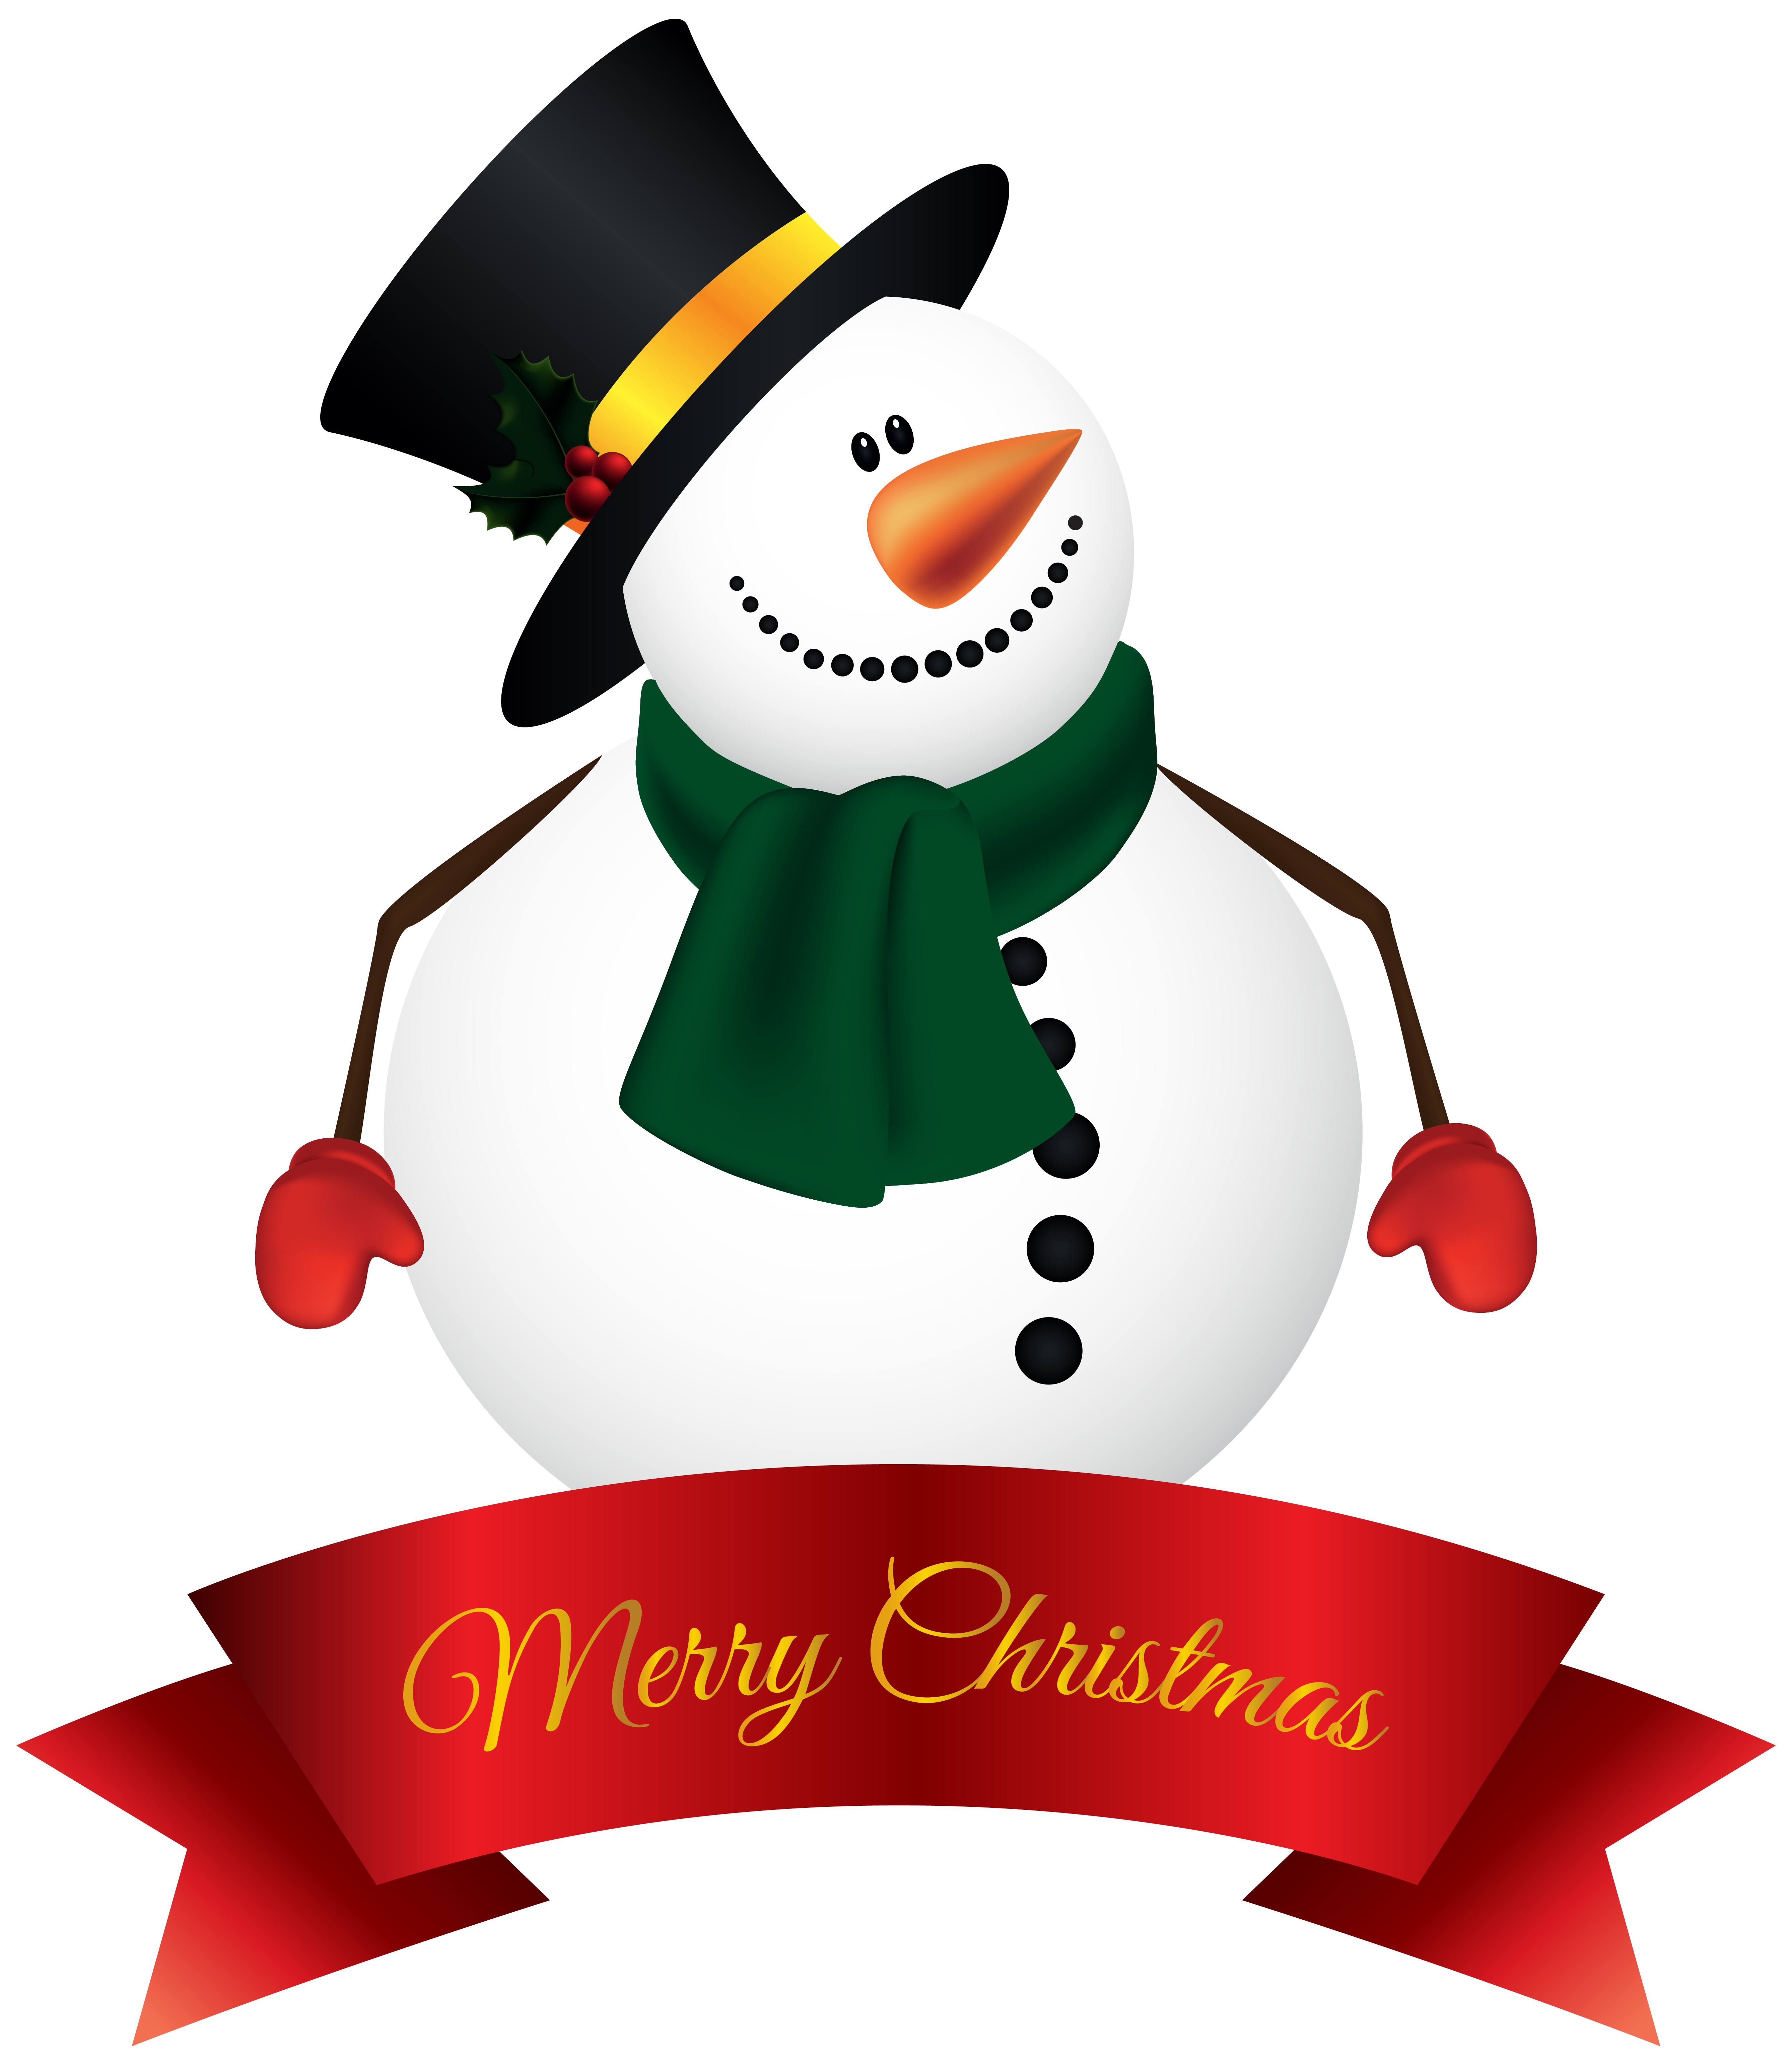 Merry christmas clipart snowman. And happy new year